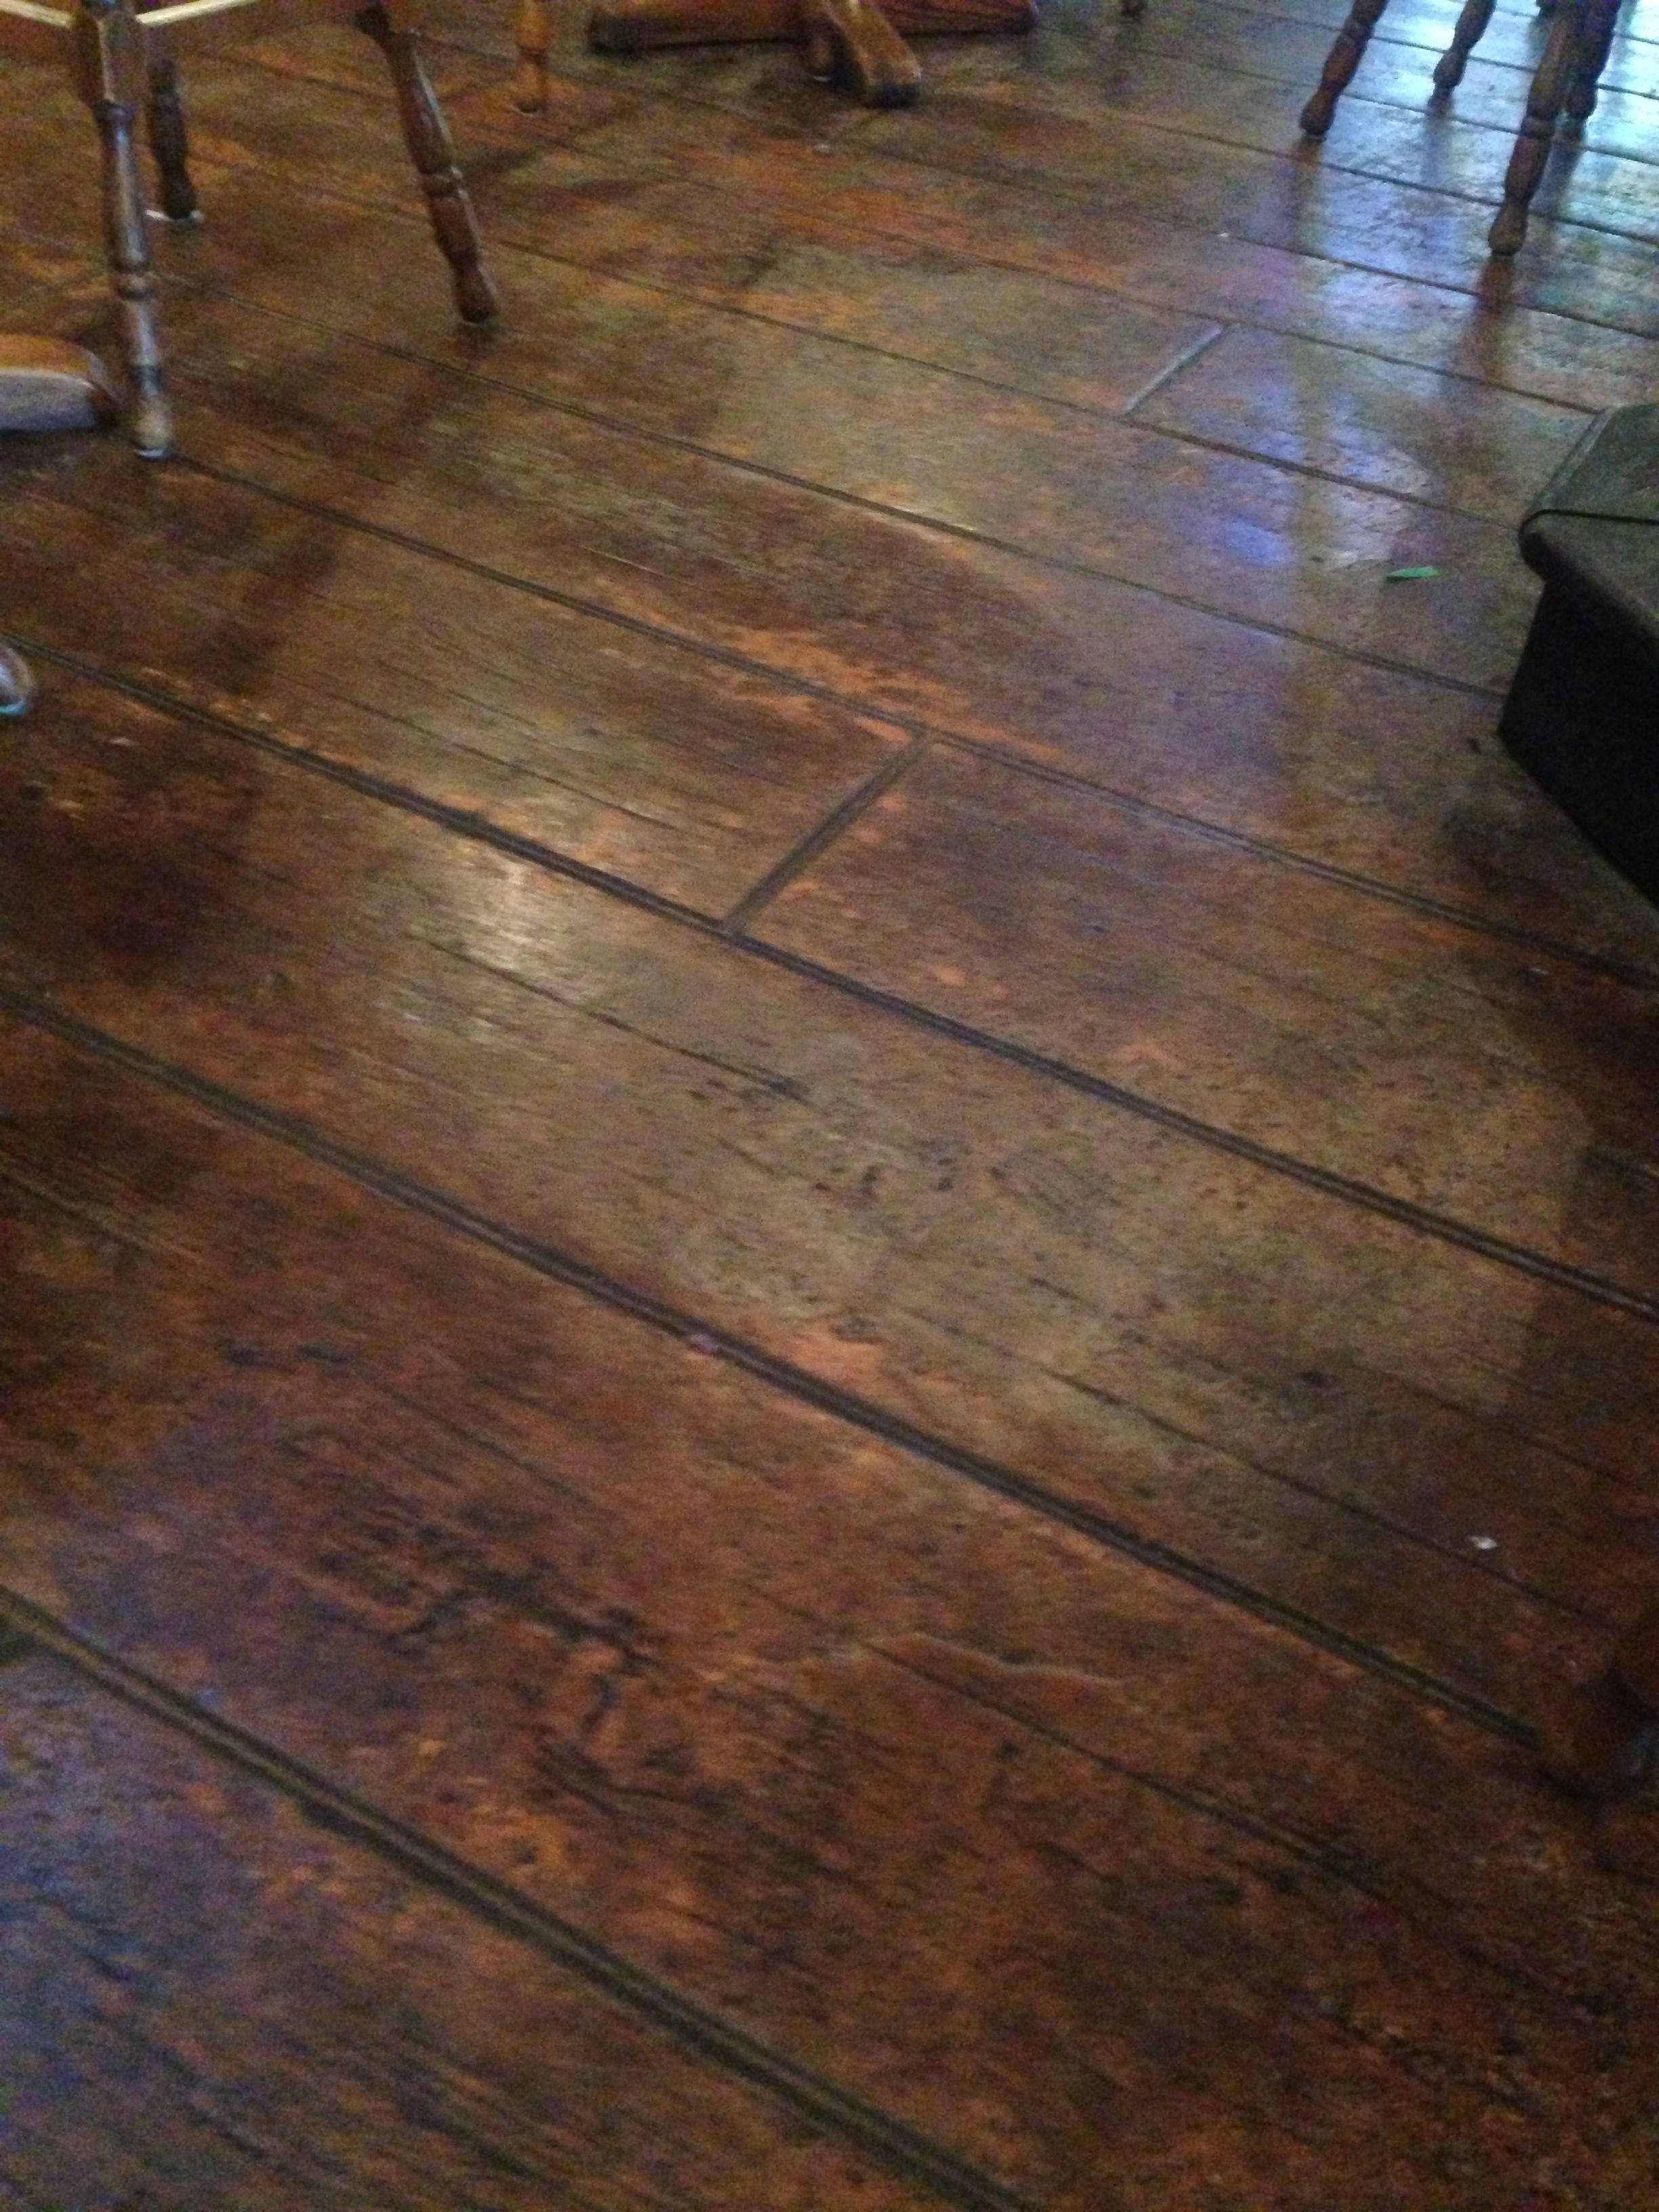 Stamped concrete floors | Home | Pinterest